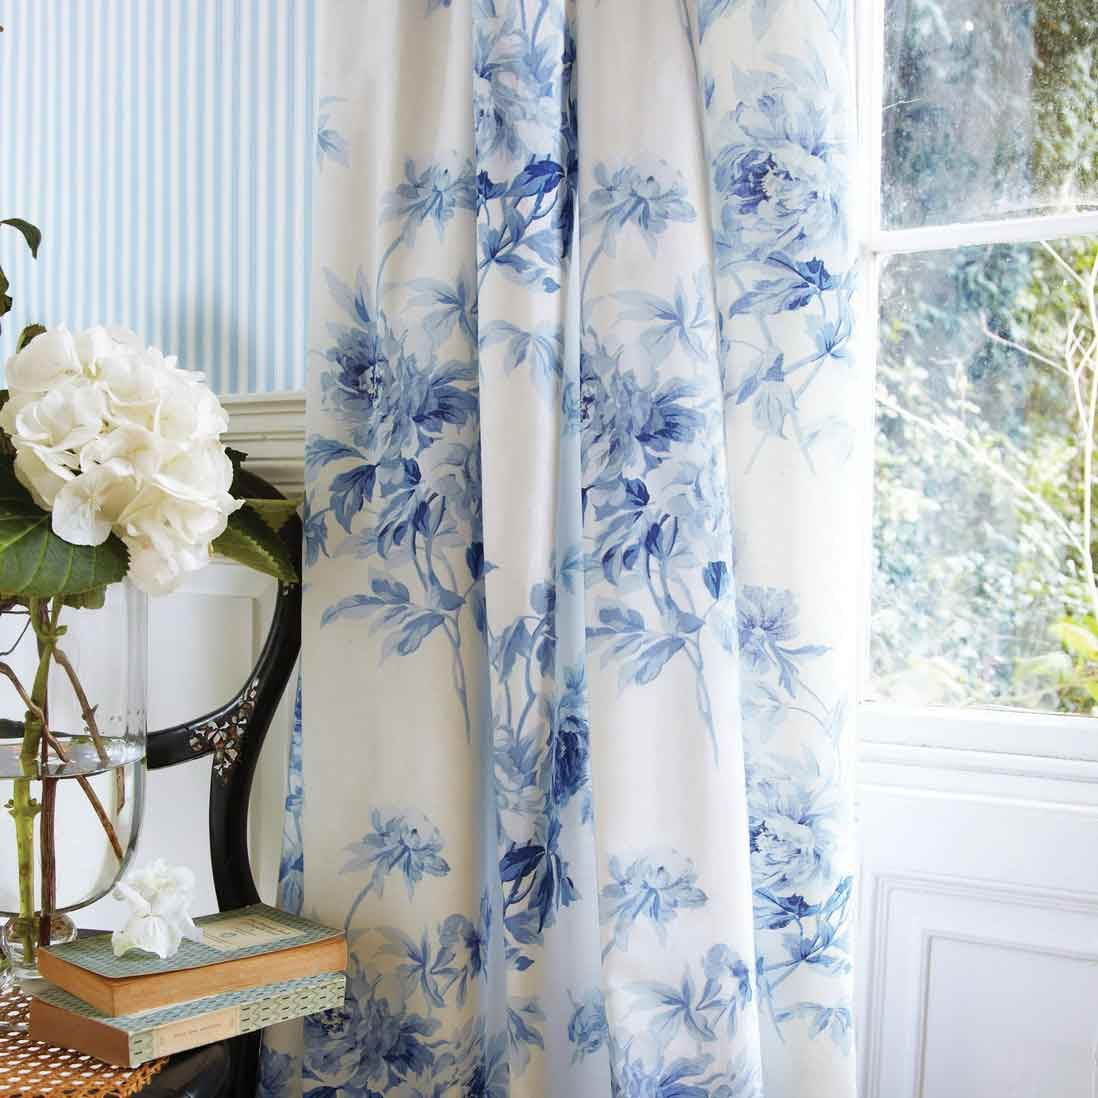 Home Interior Clean And Pure Of Blue Curtain Bedroom Spring Blue